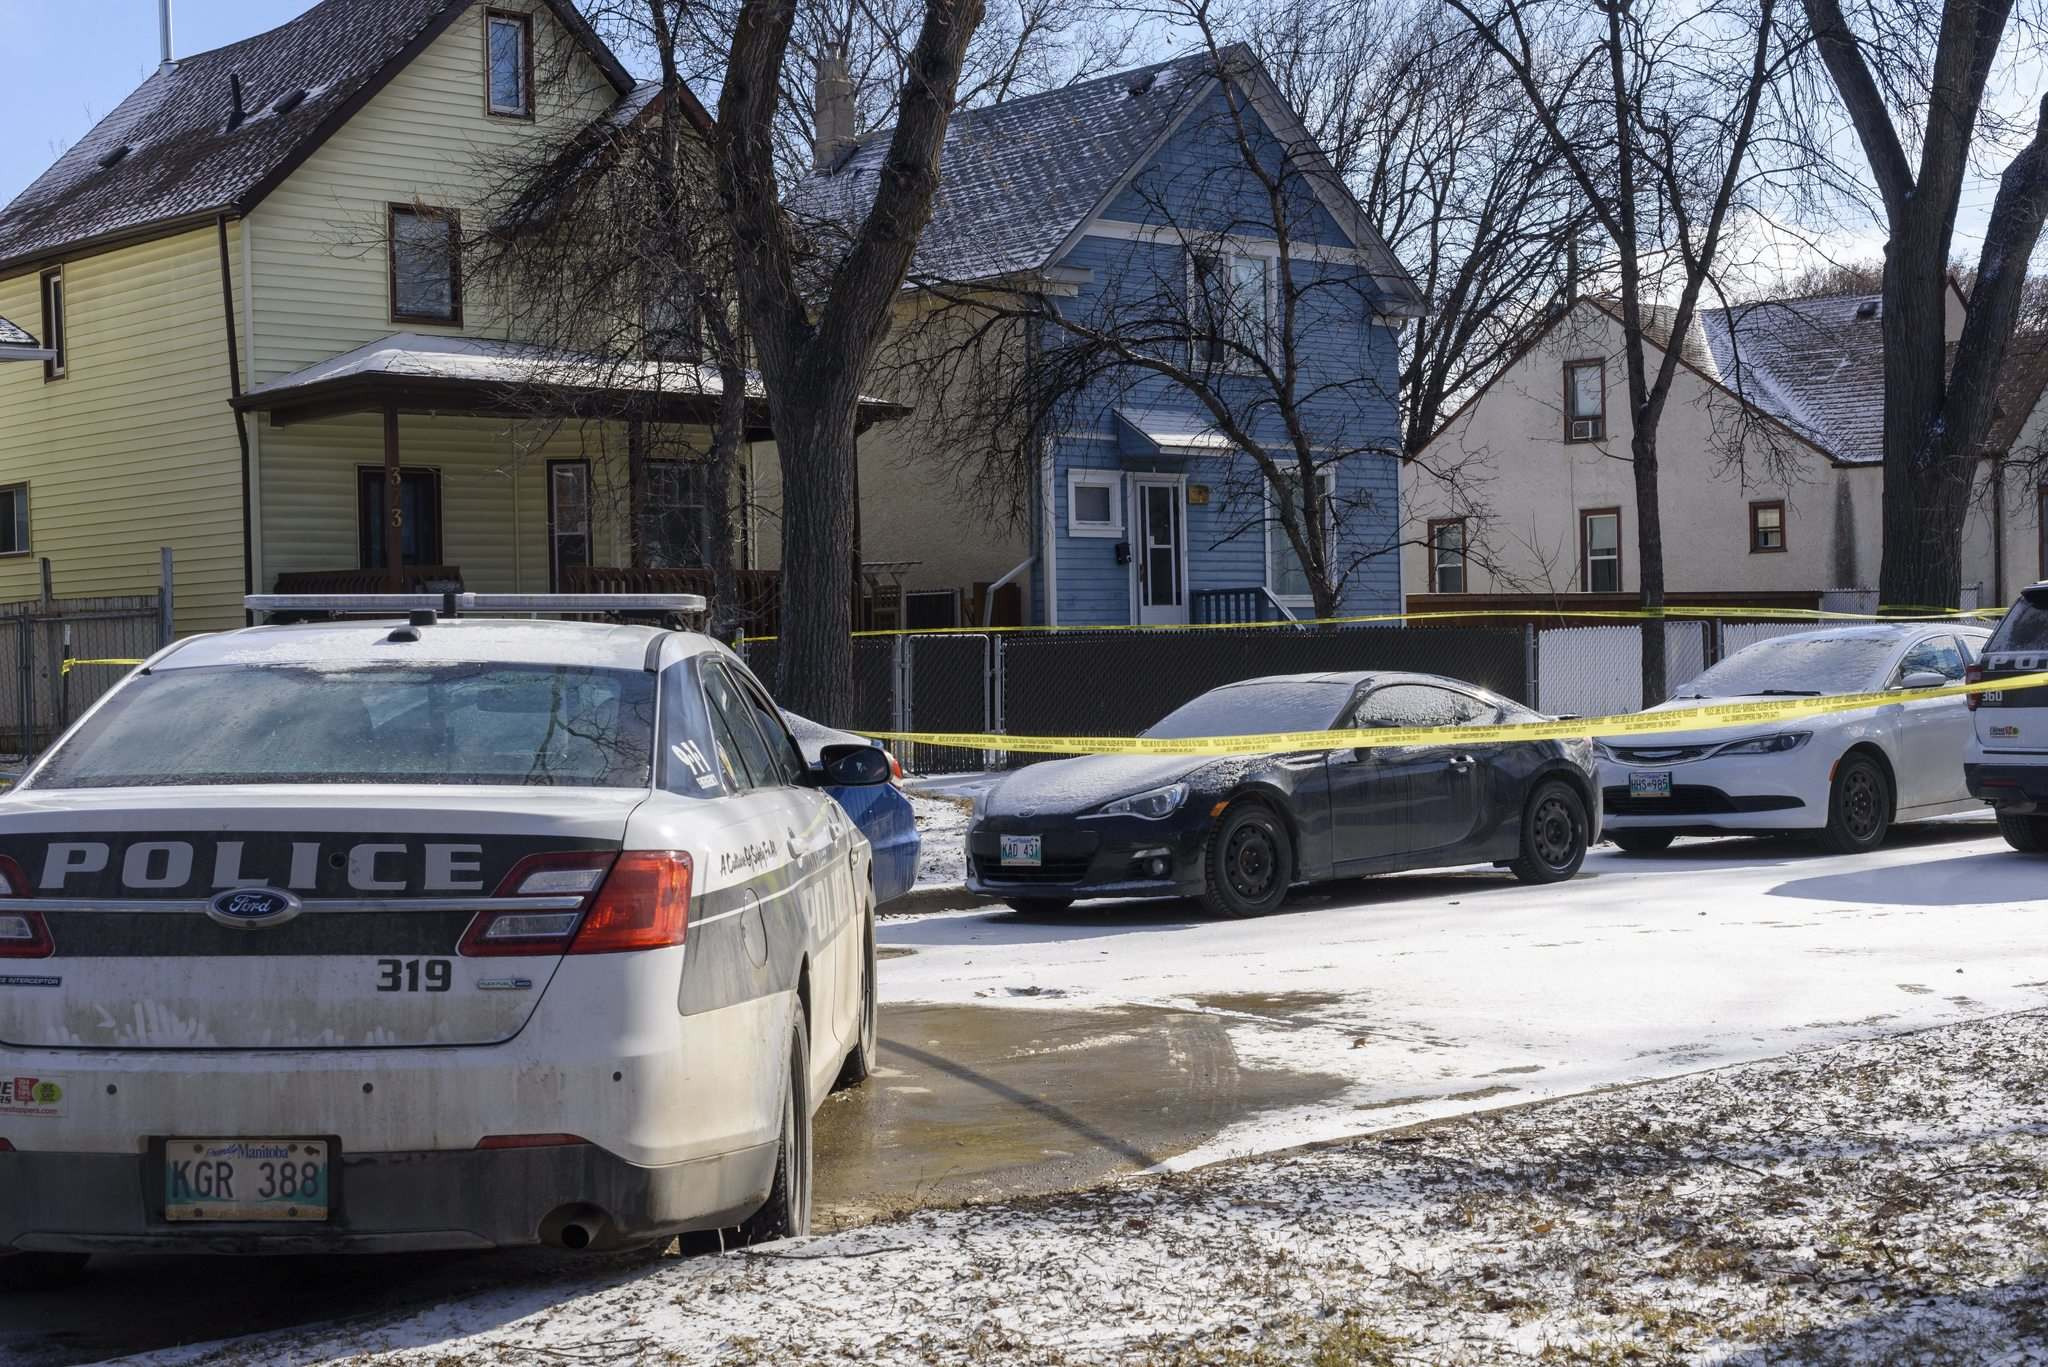 The man exited a house on Anderson Avenue to confront the police, Smyth said, and an officer fired his gun, striking the man. (Jesse Boily / Winnipeg Free Press)</p>